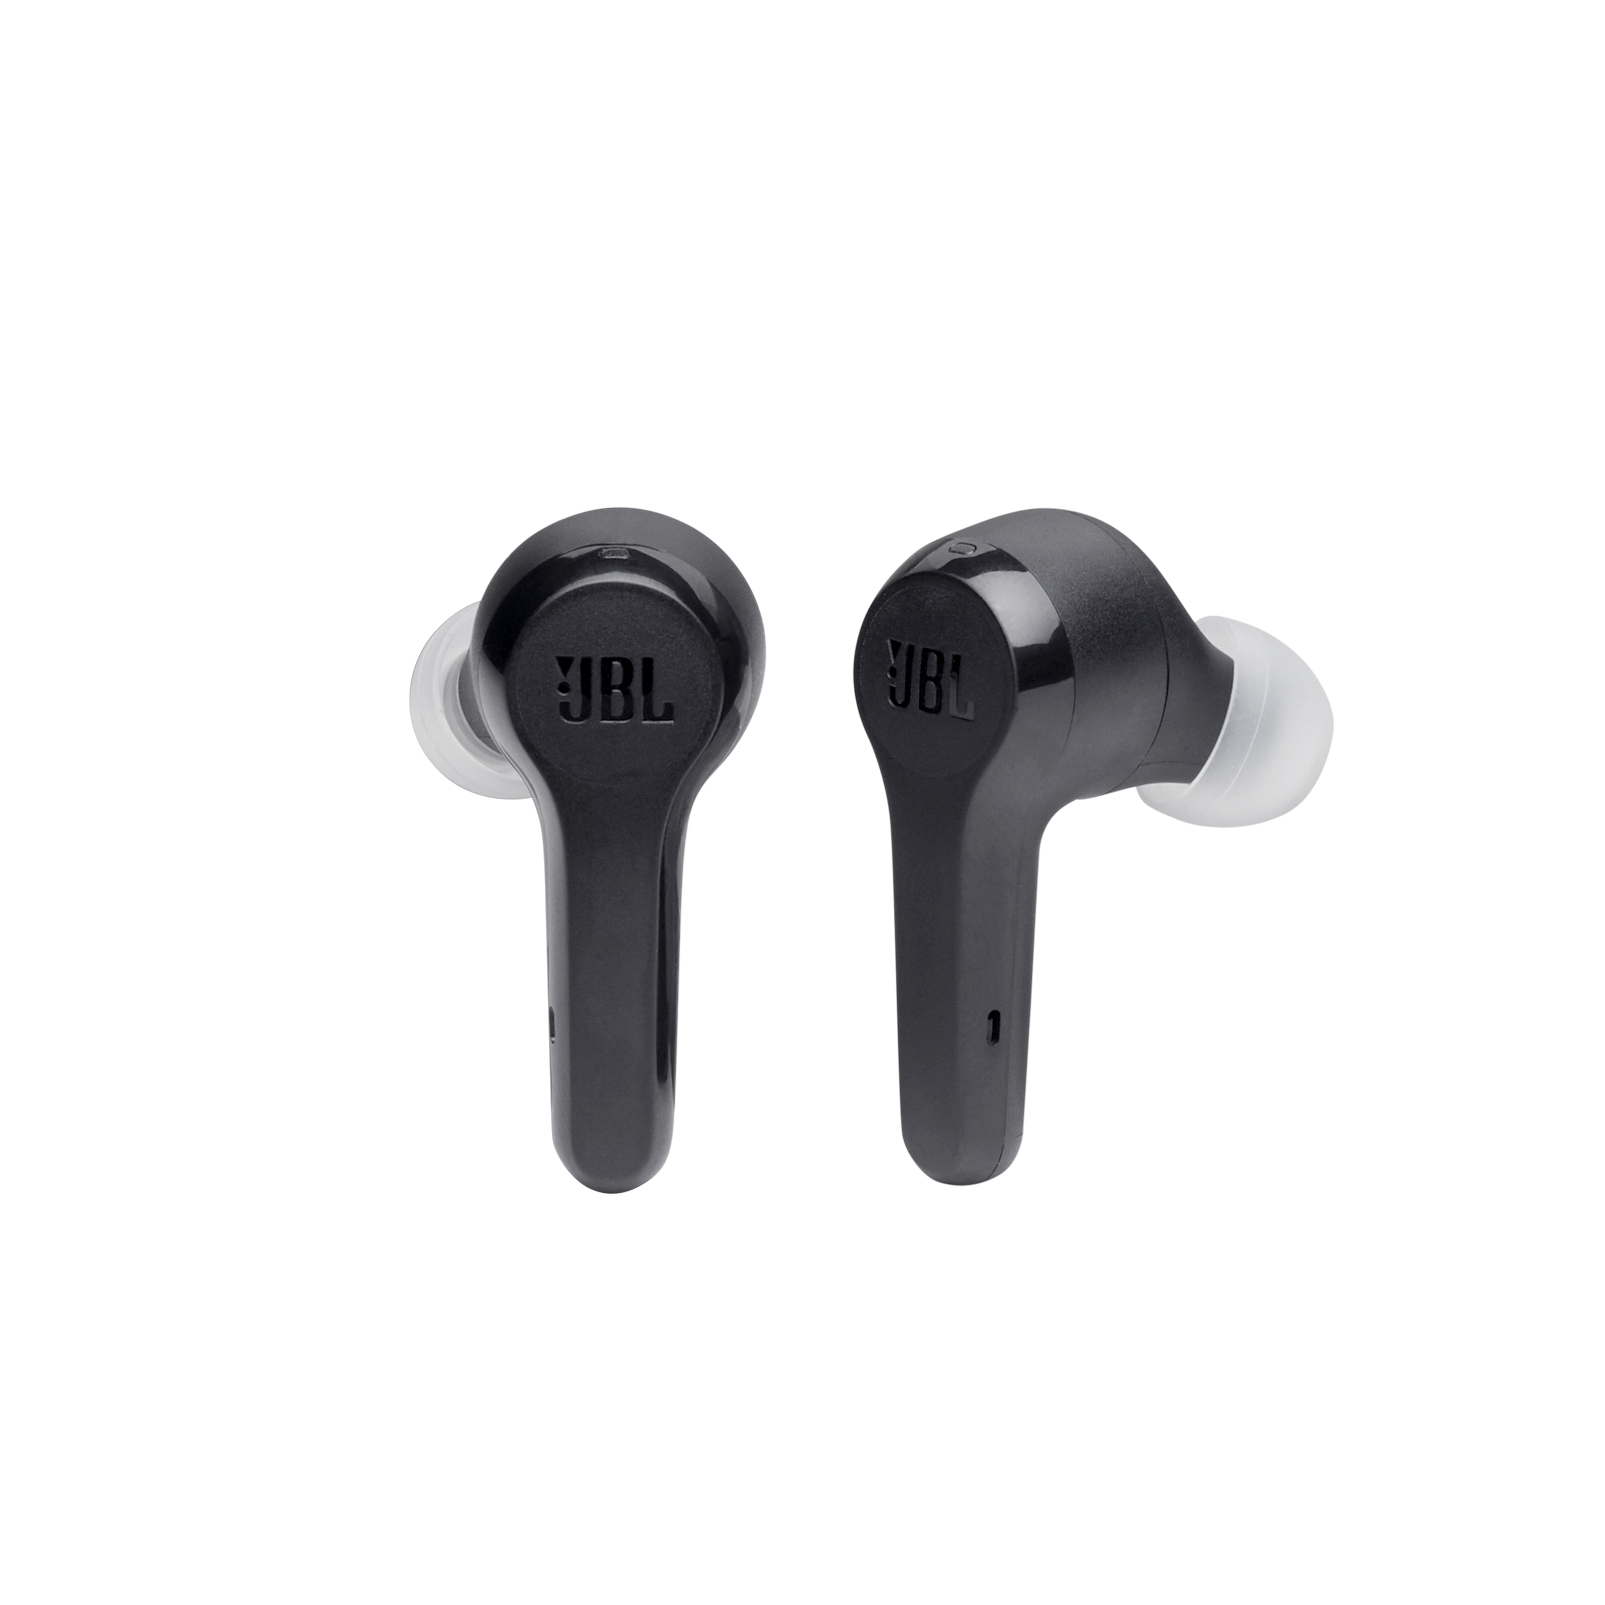 JBL Tune 215TWS - Black - True wireless earbuds - Front